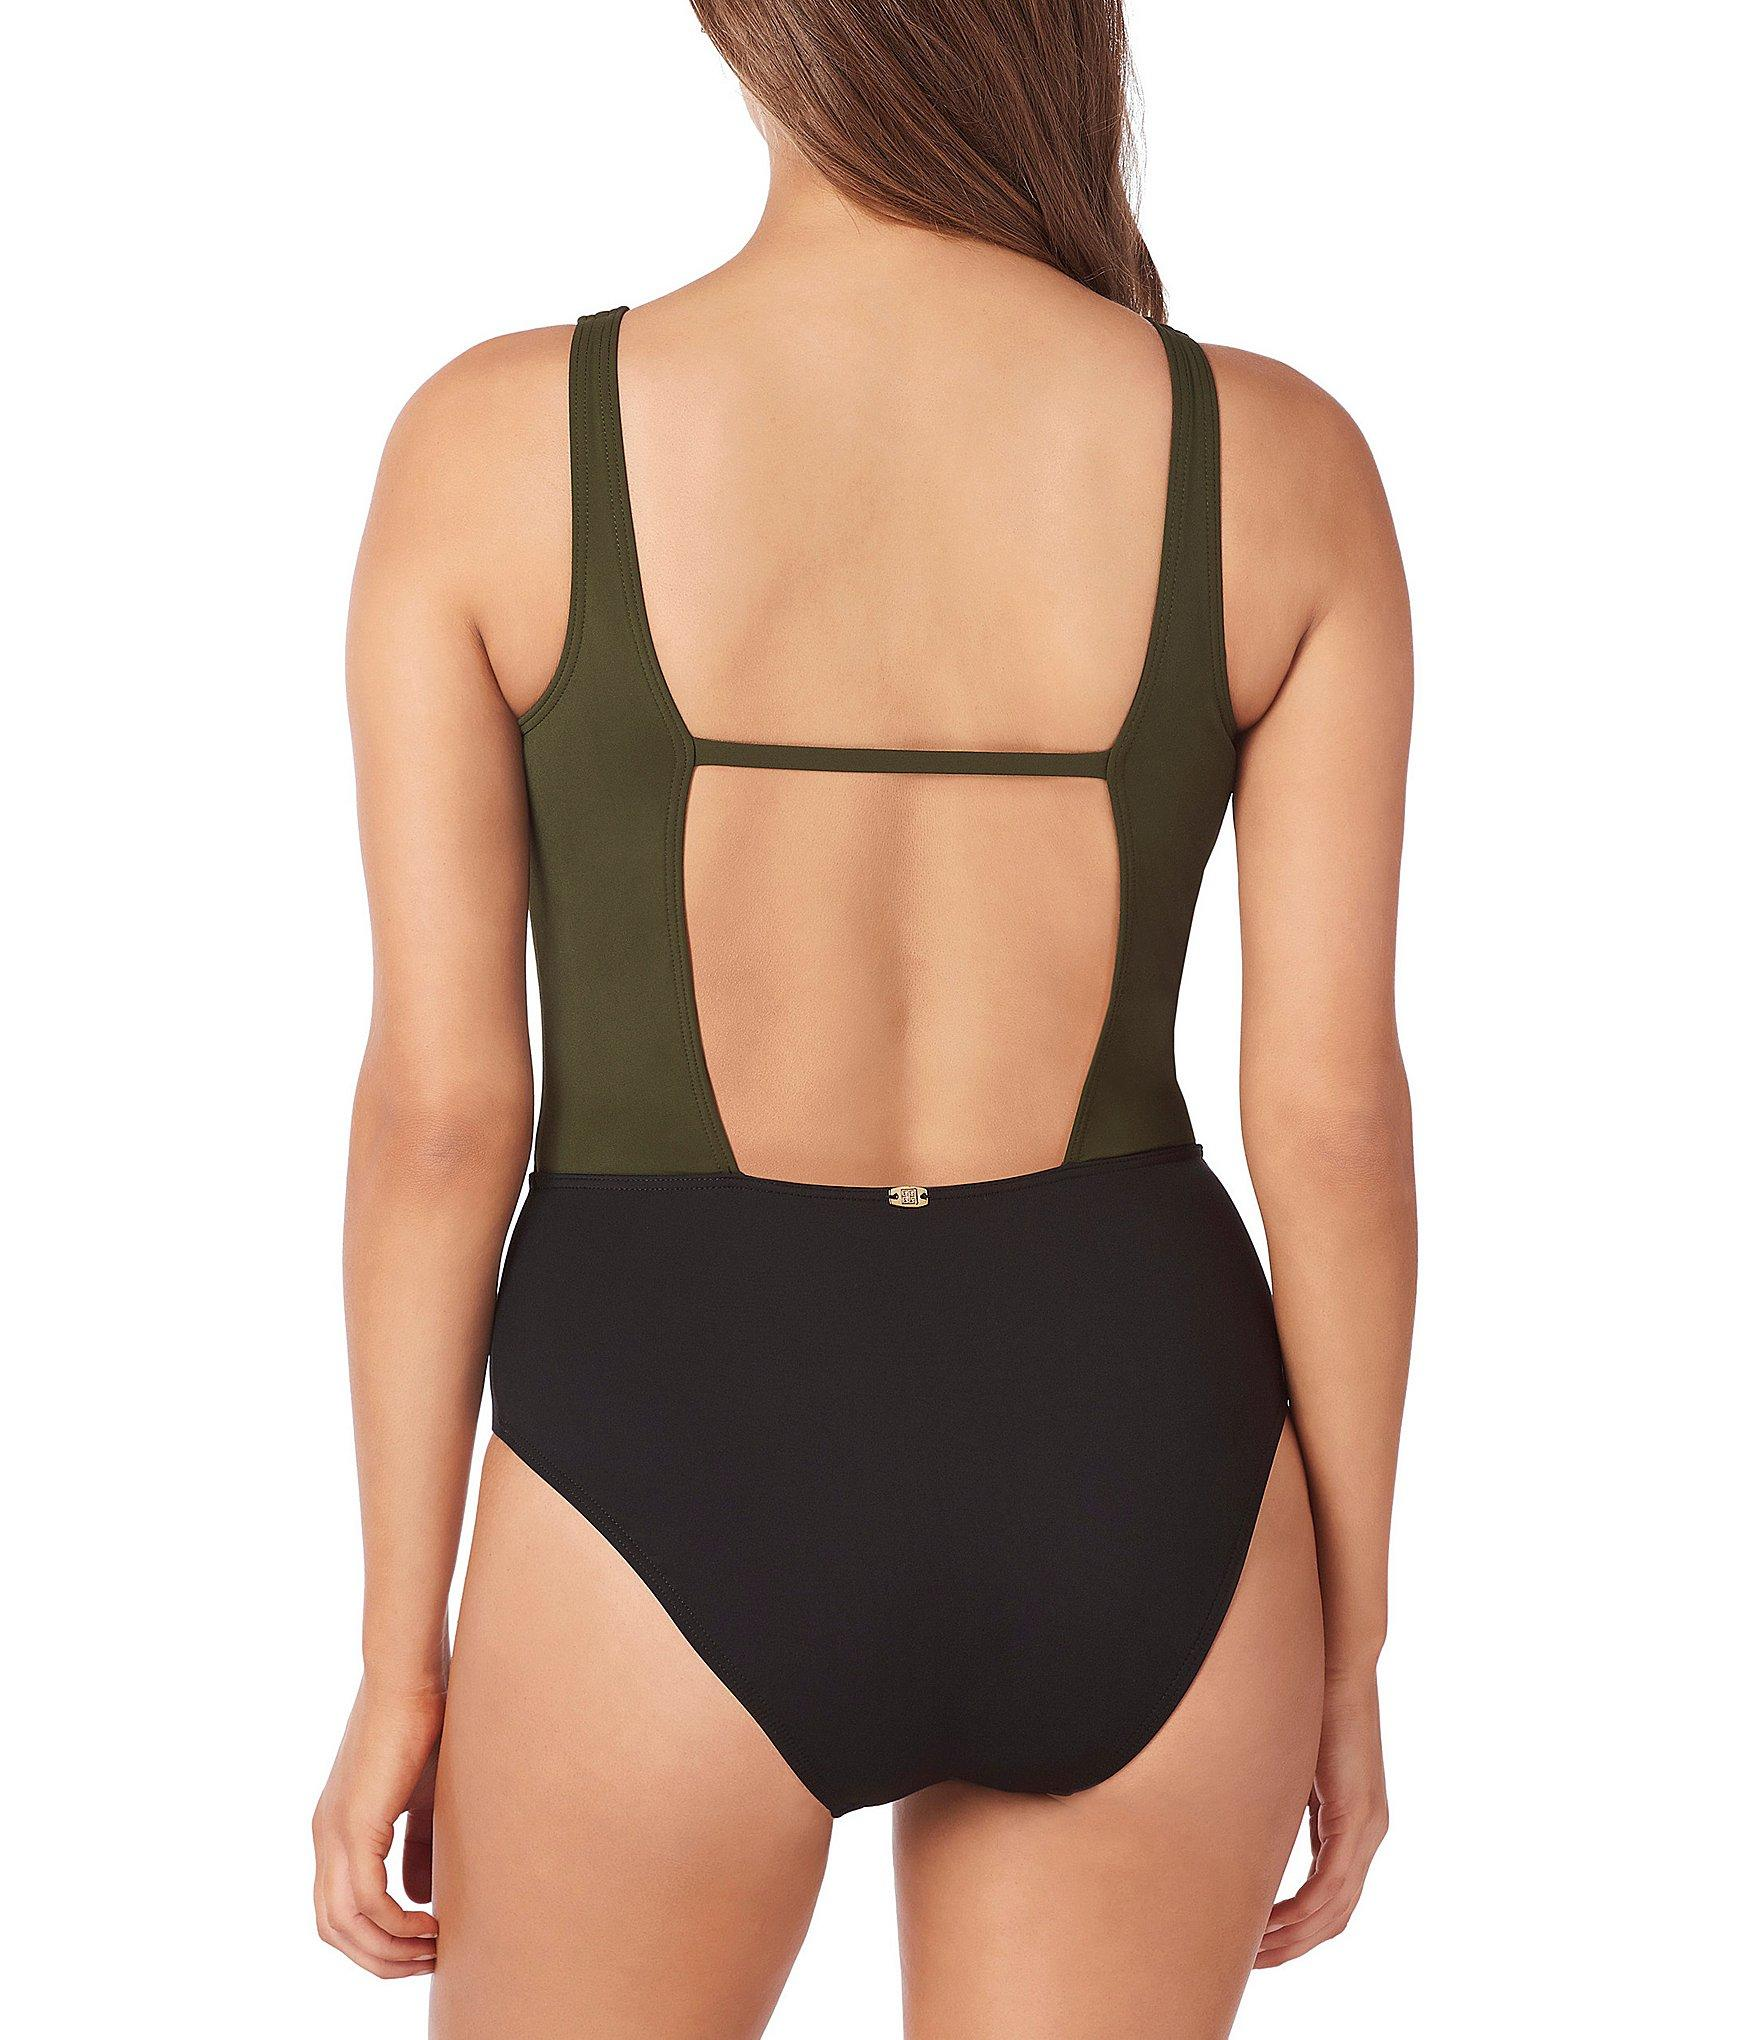 Lyst - Miraclesuit Amoressa By Eclipse Ursa Plunge One Piece Shaping ... 14283d92a